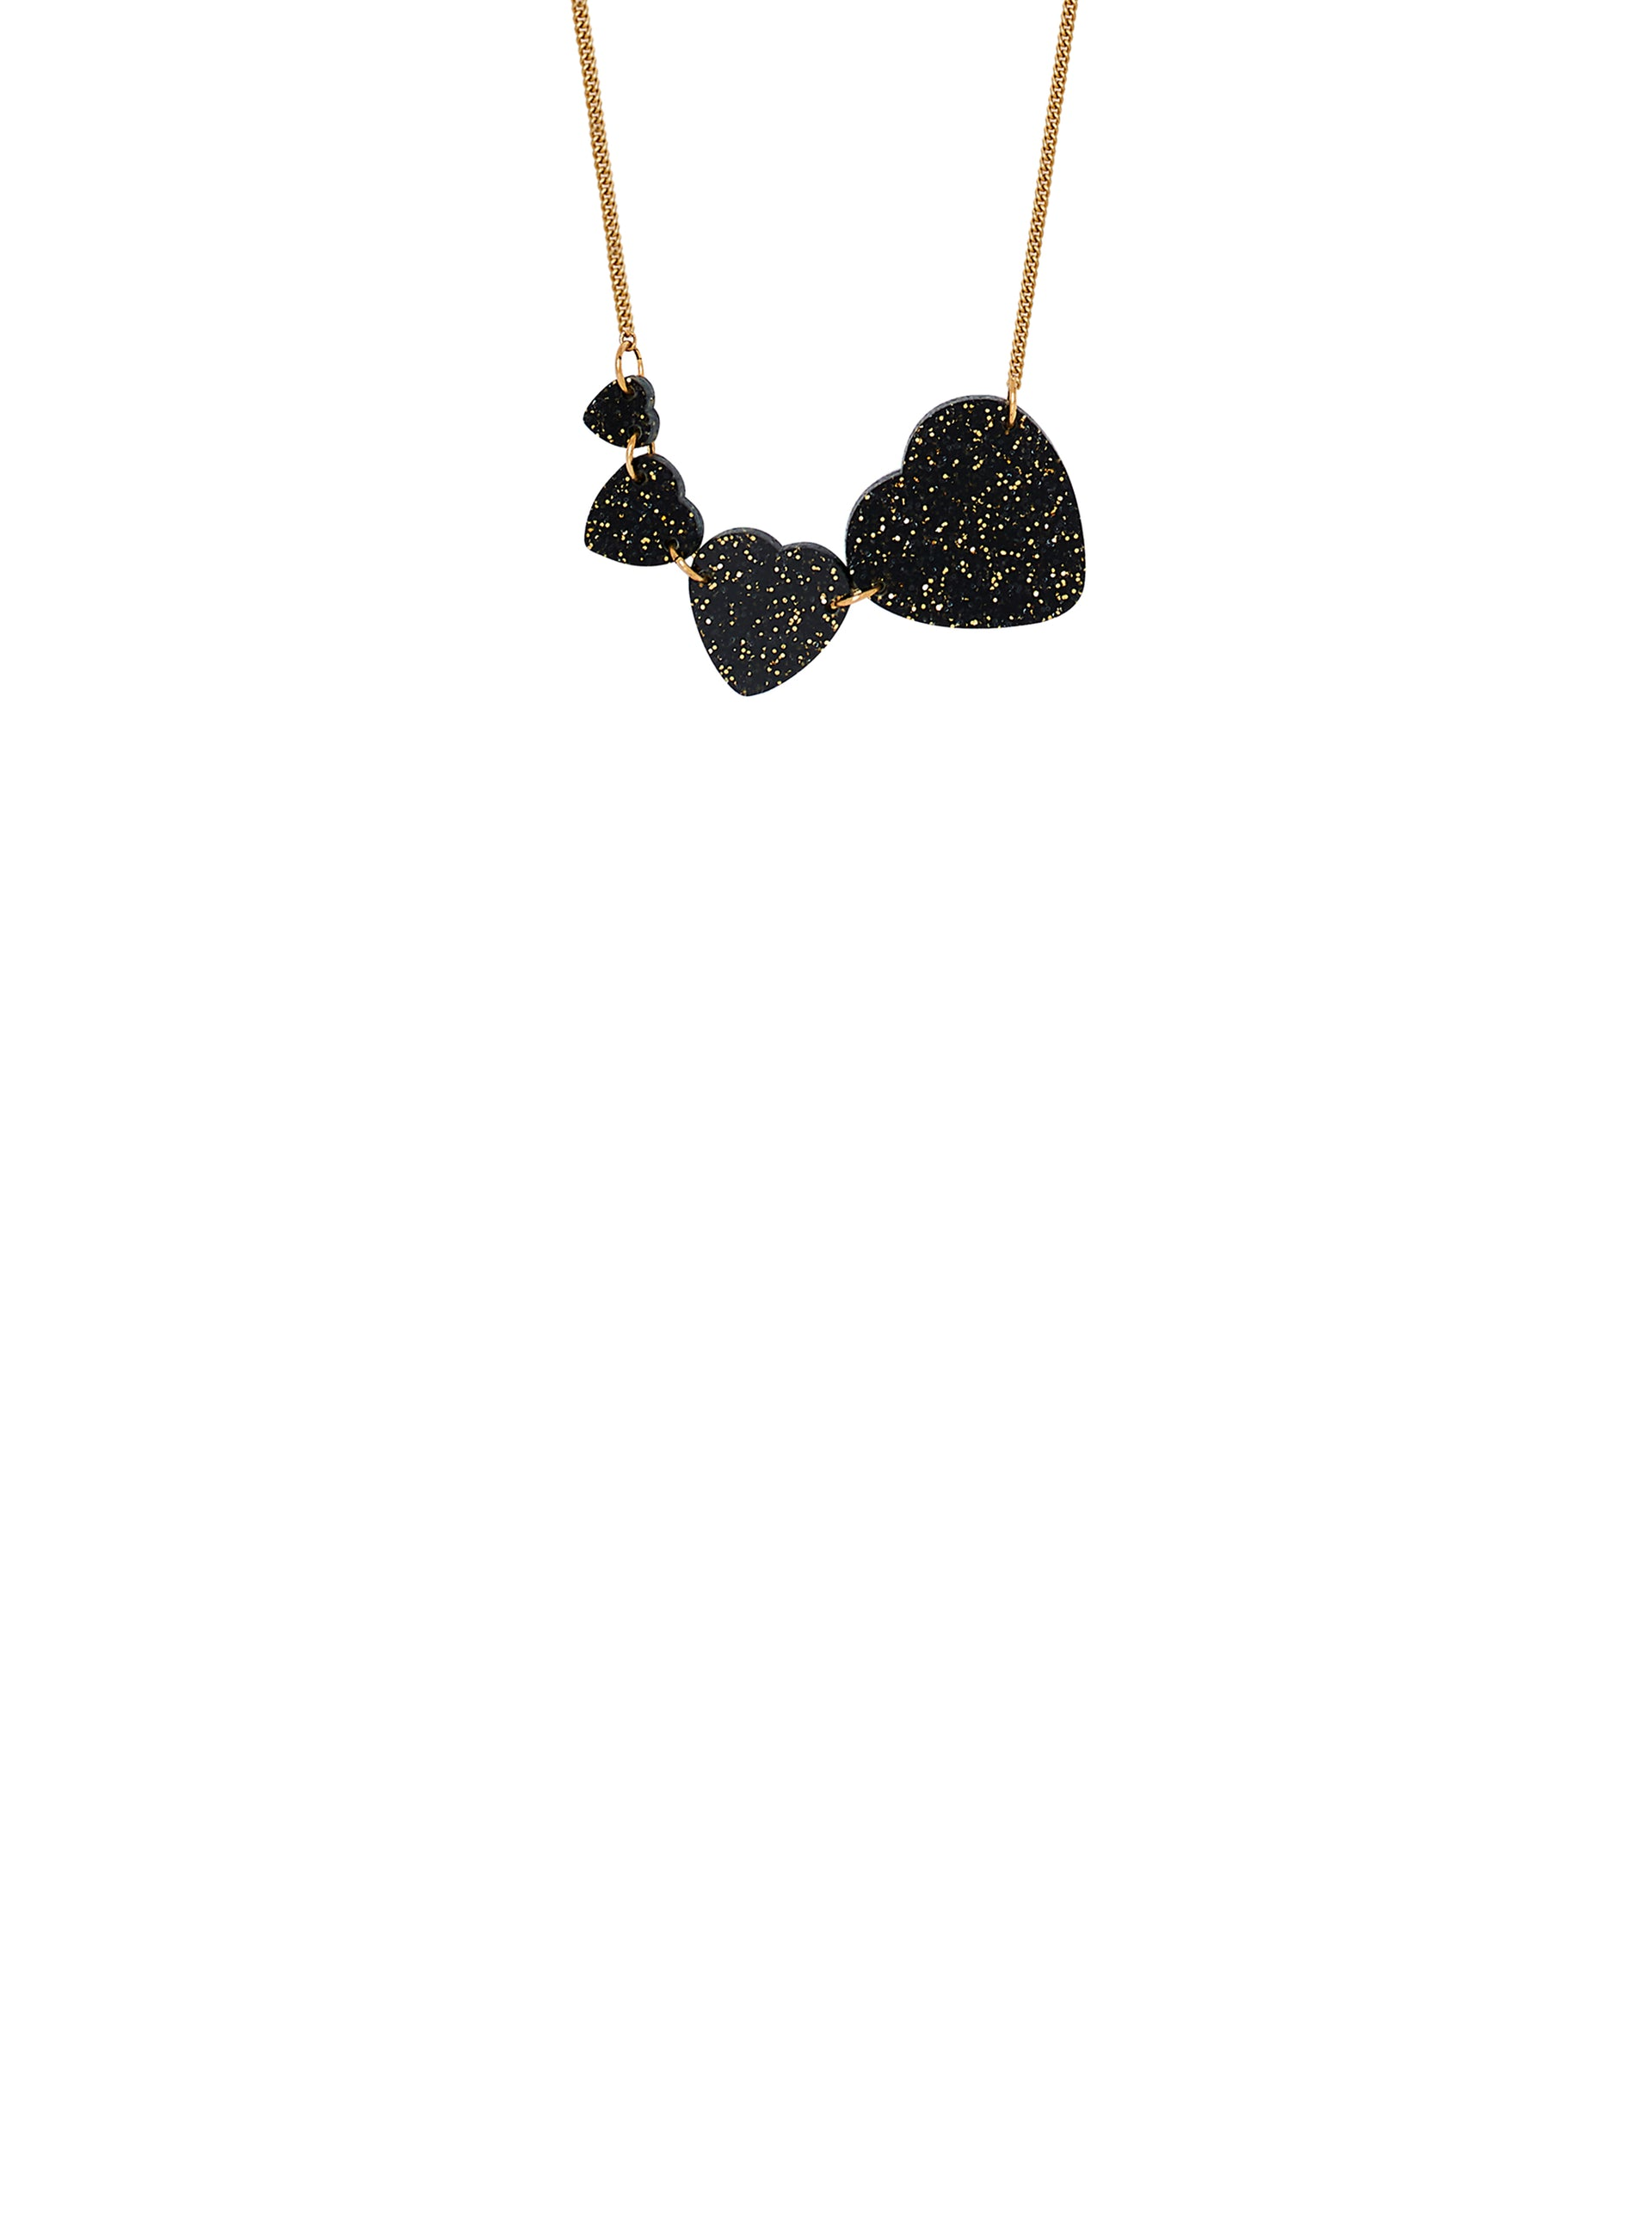 Shooting Heart Necklace - Black Glitter